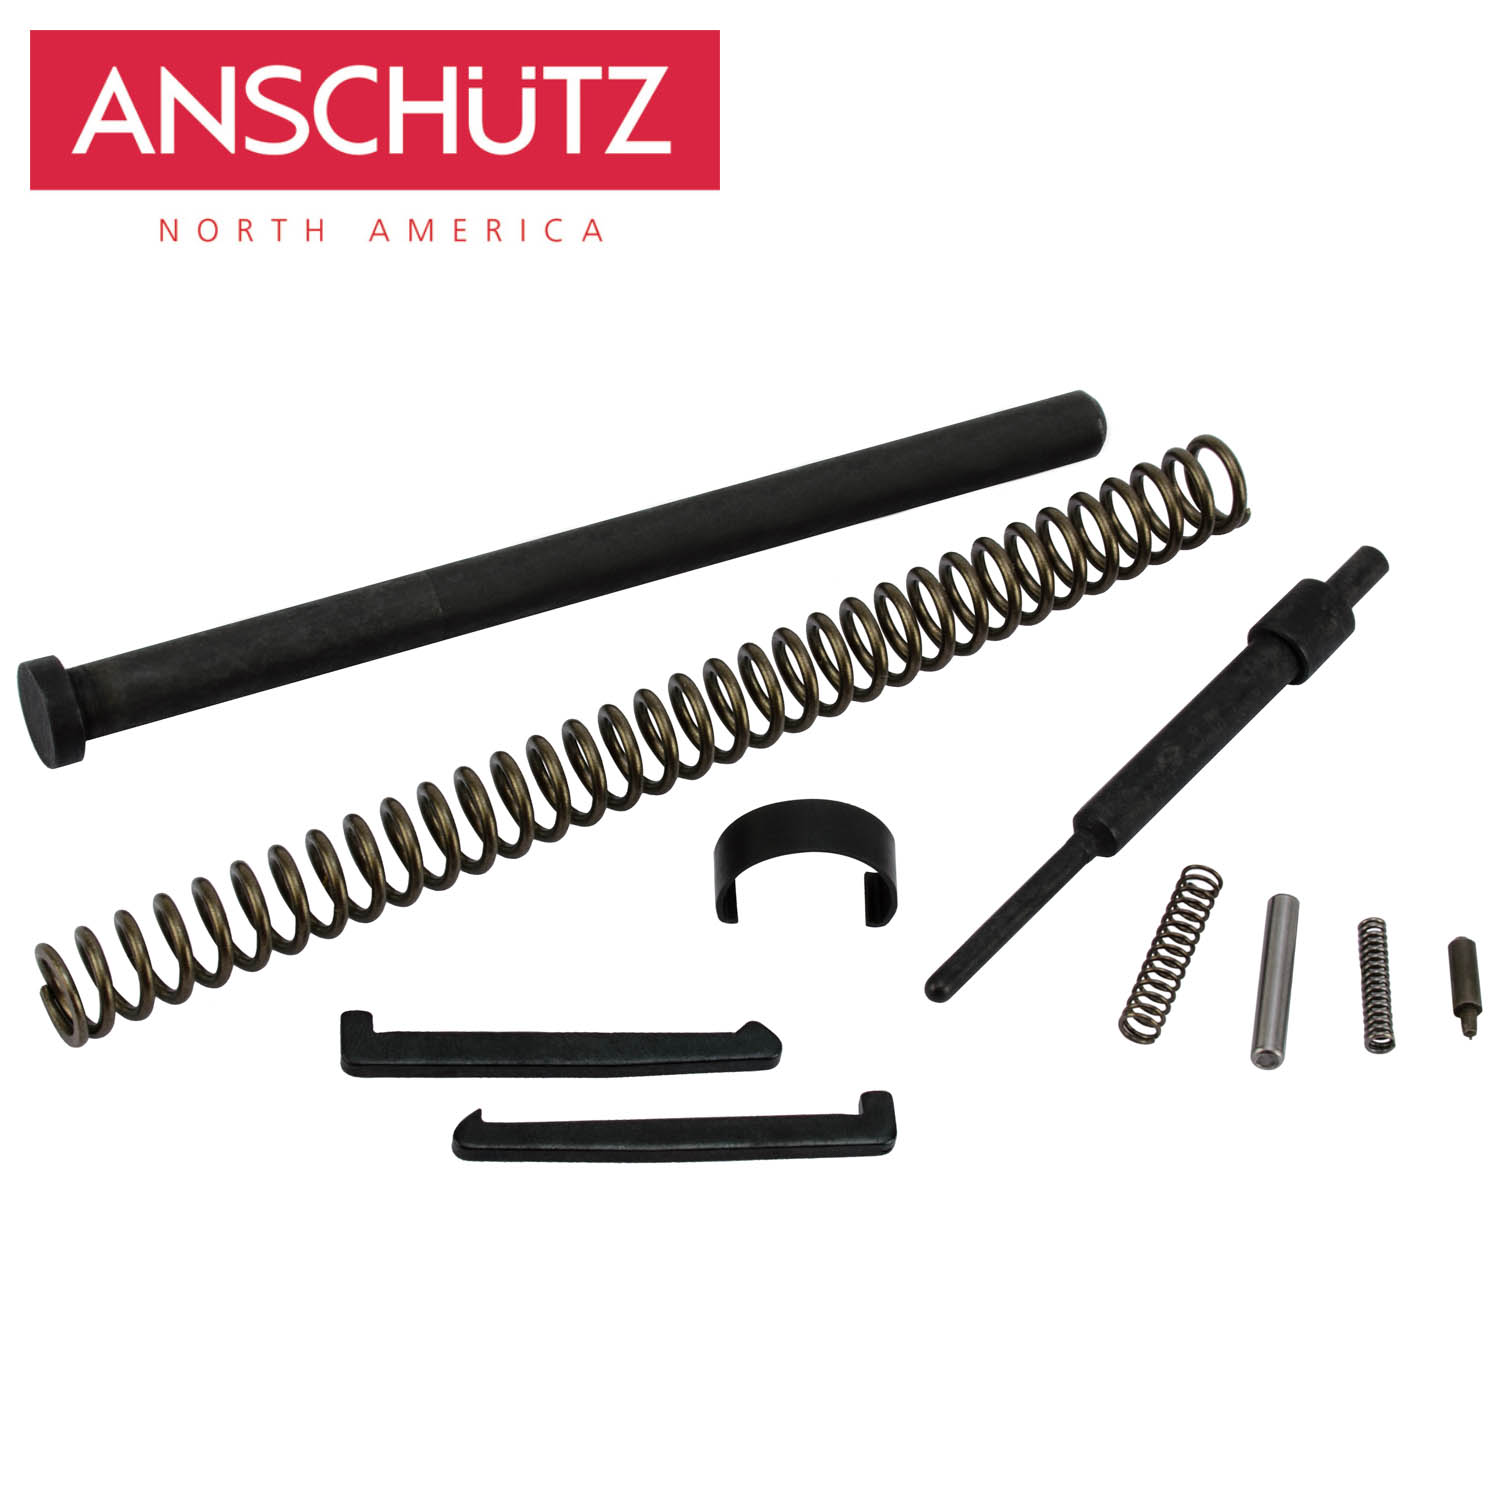 Anschutz 64 Match Action Bolt Parts Kit,  22LR: Midwest Gun Works